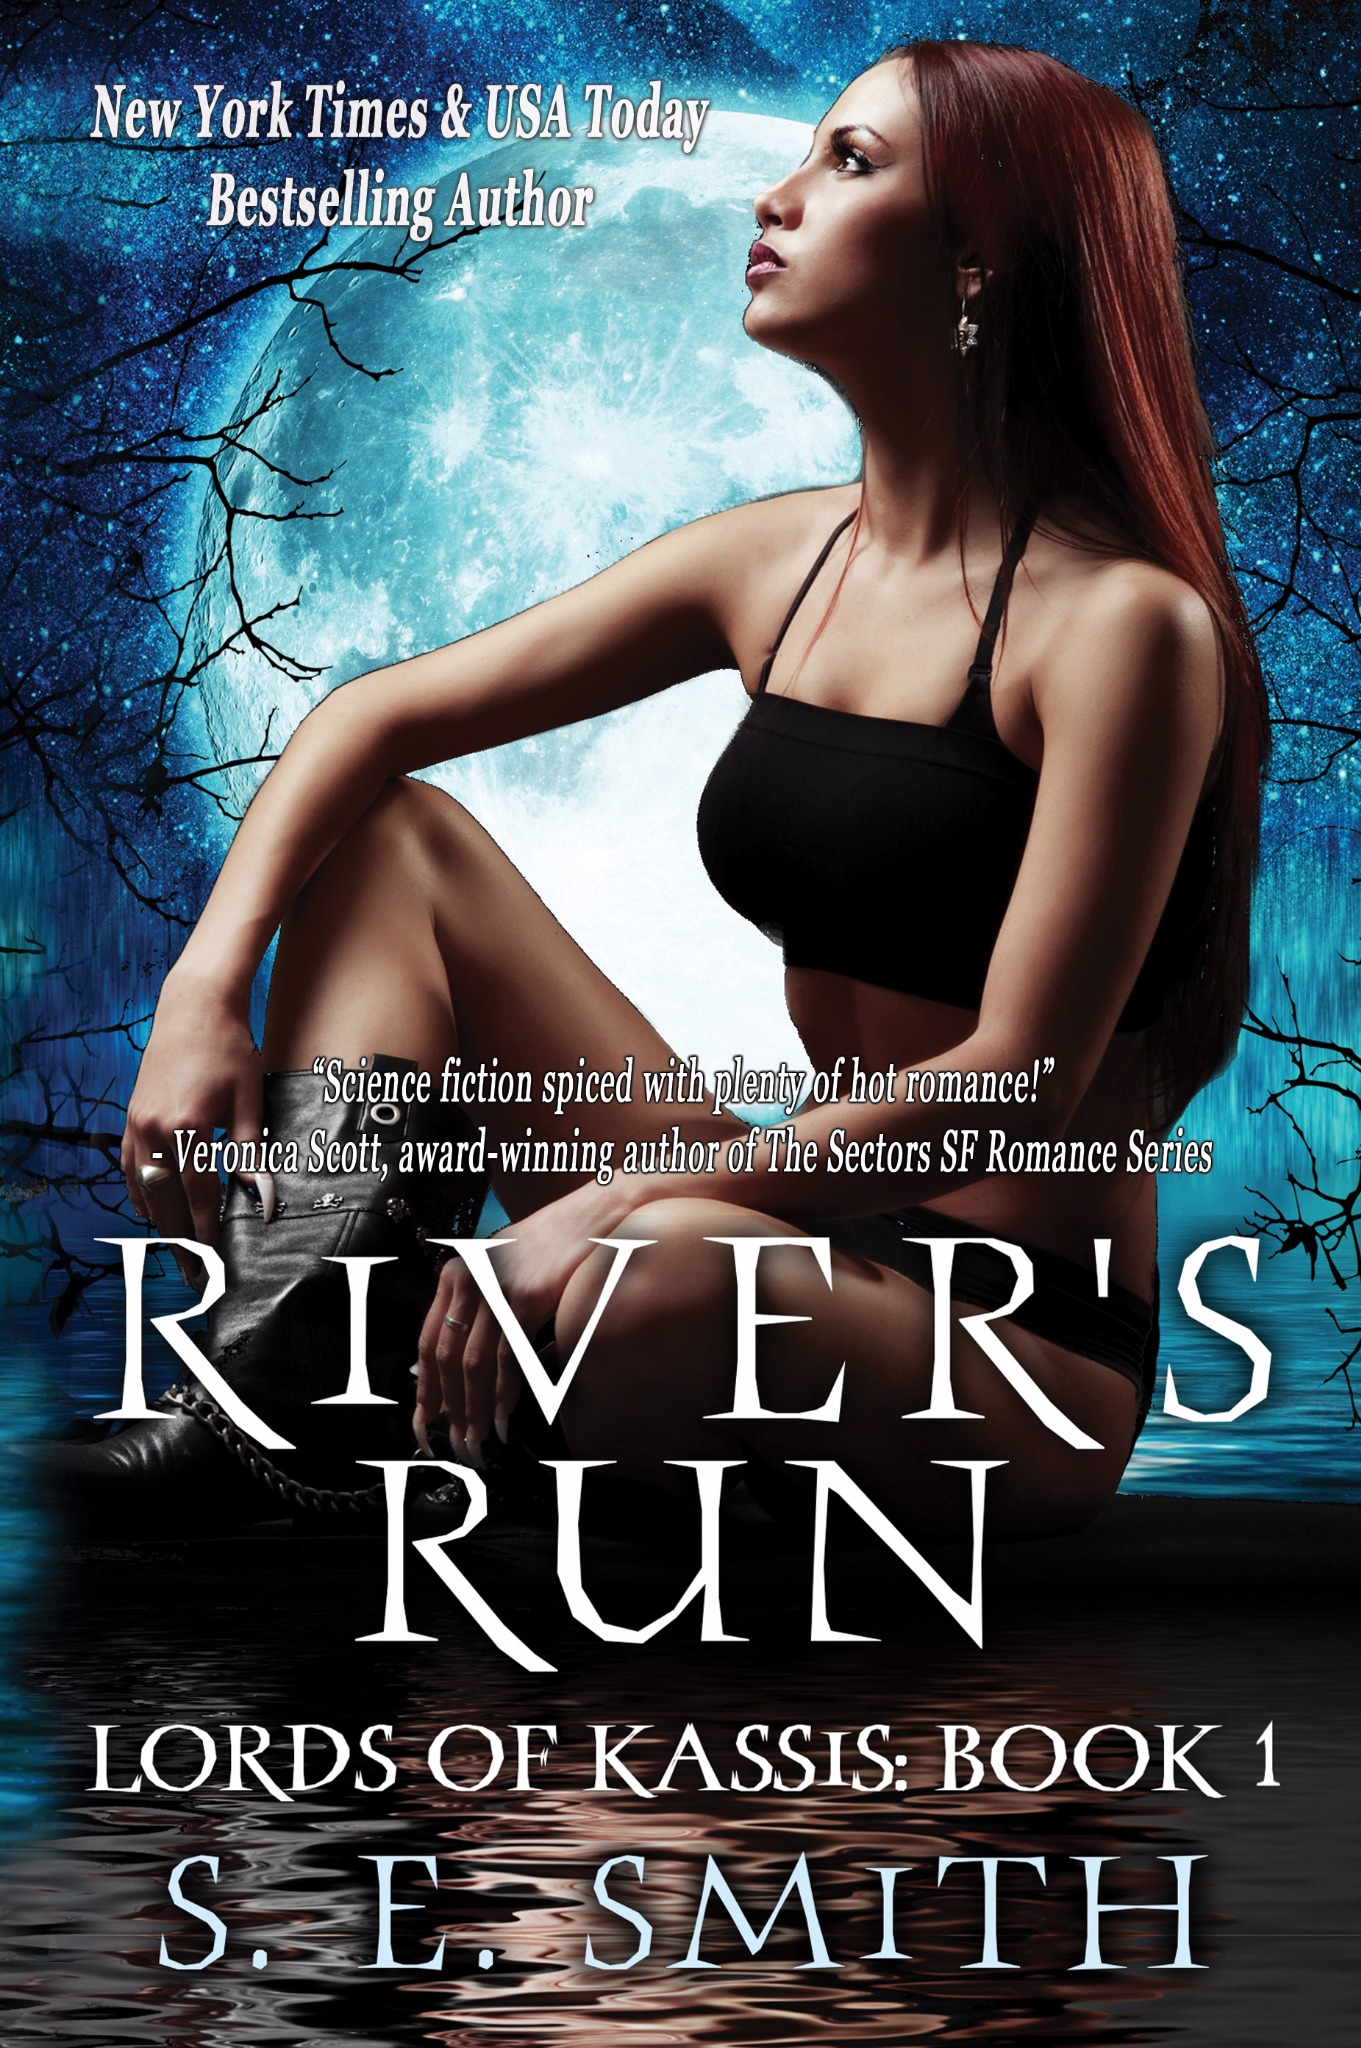 River's Run: Lords of Kassis Book 1 (Paperback)